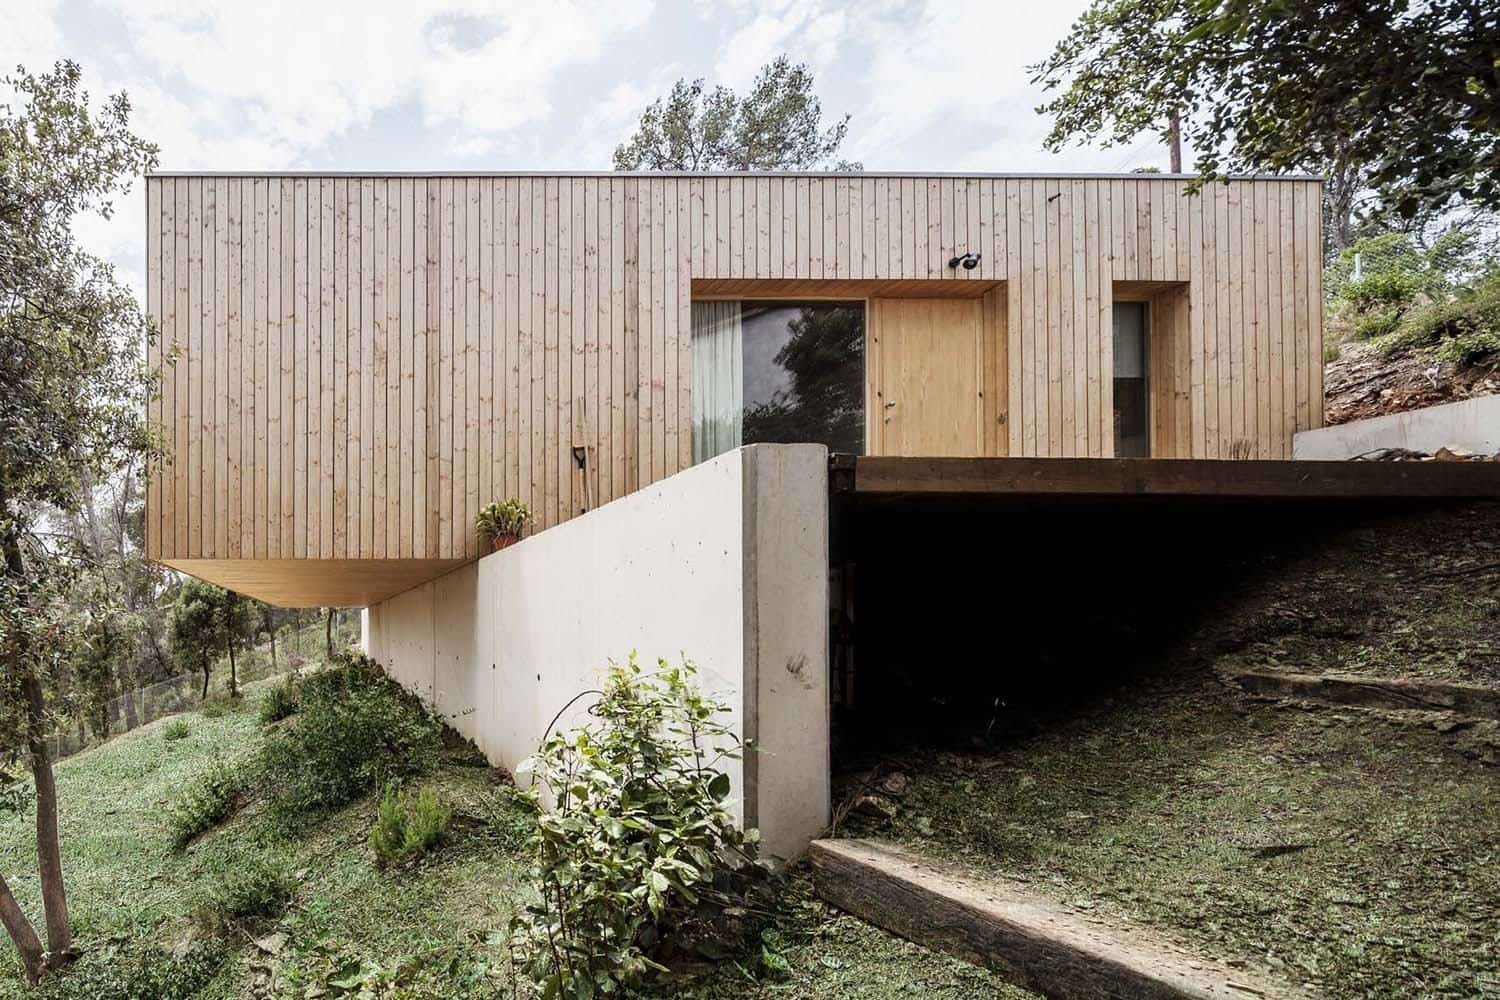 Prefabricated Home Design-Alventosa Morell Arquitectes-02-1 Kindesign